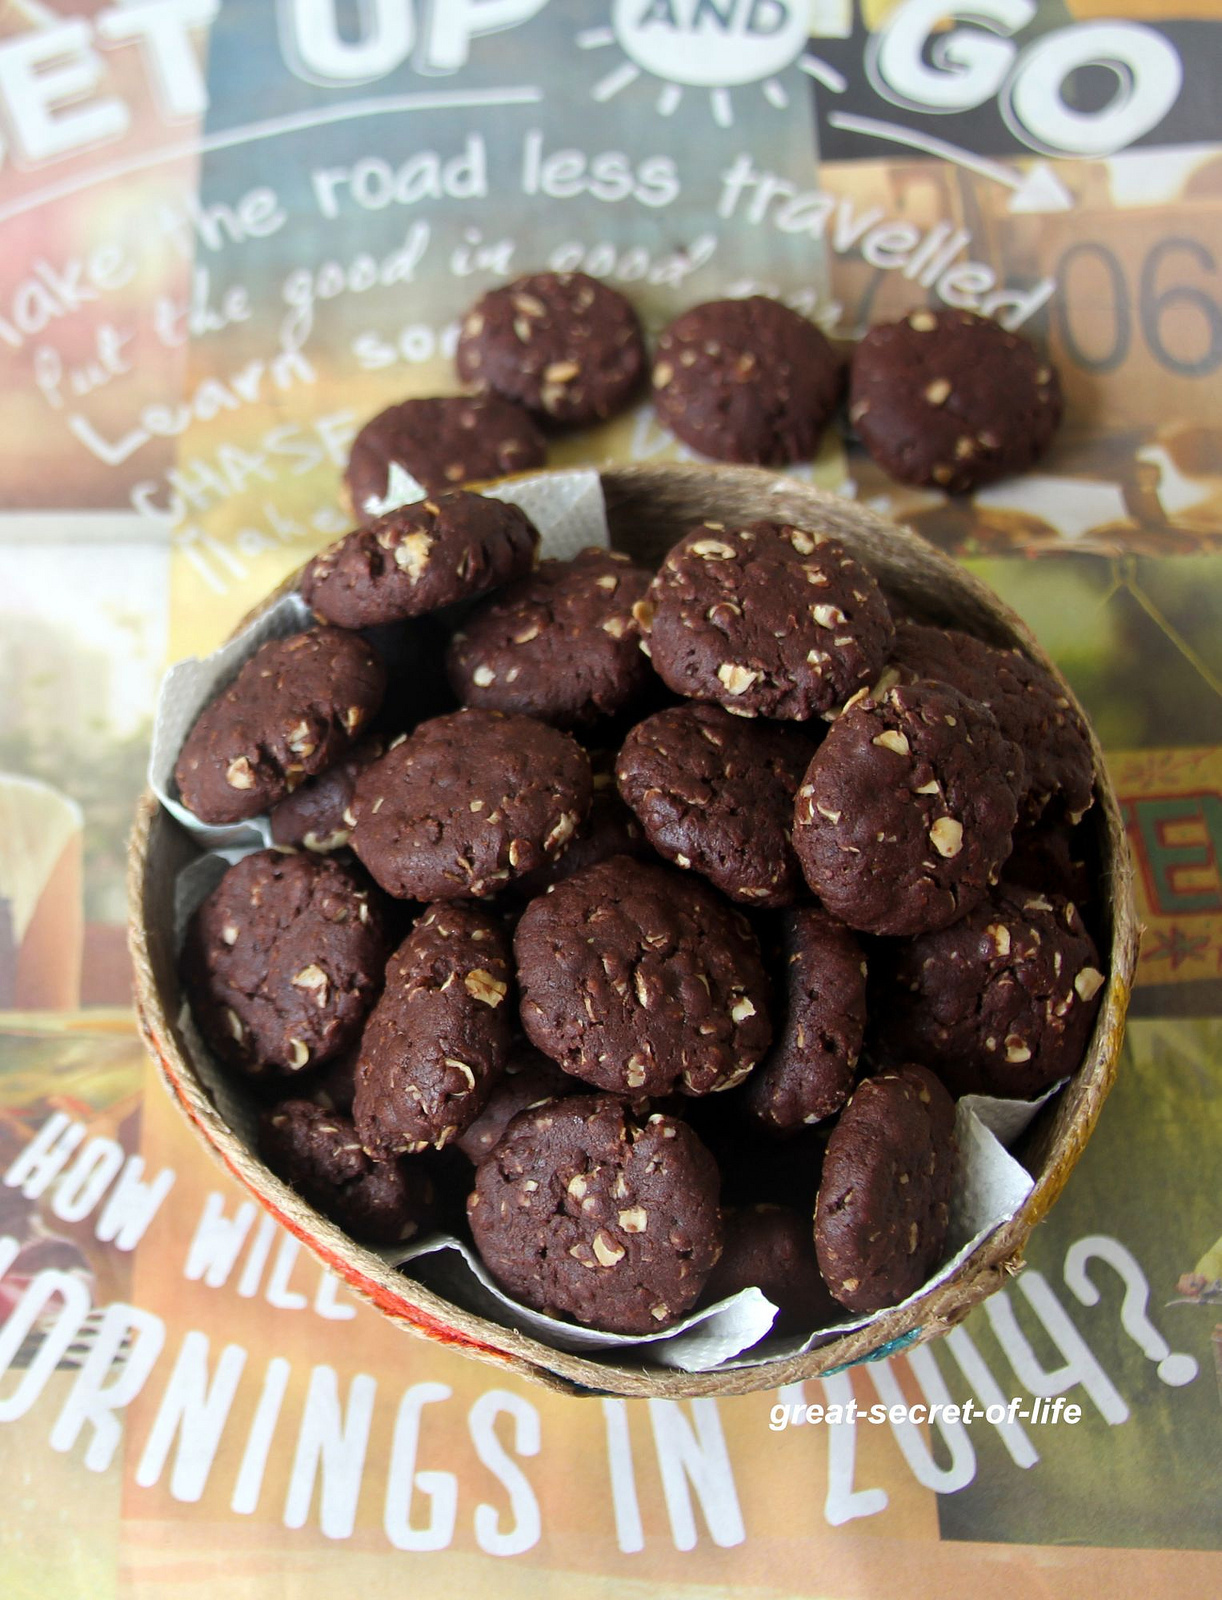 Chocolate Peanut Butter Oats Cookies - Eggless Cookies recipe